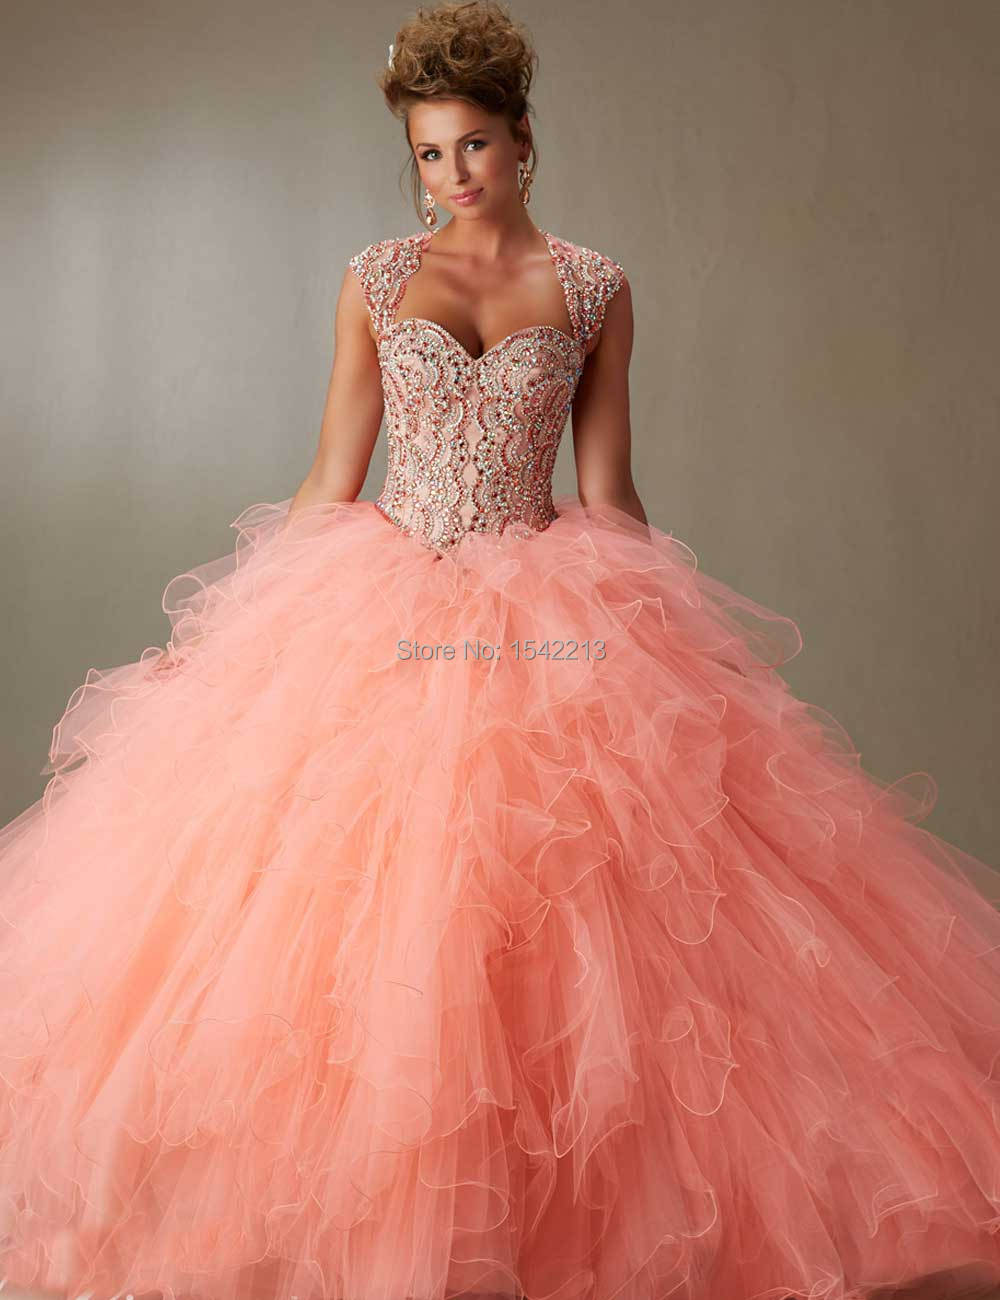 Popular Light Coral Quinceanera Dresses-Buy Cheap Light Coral ...